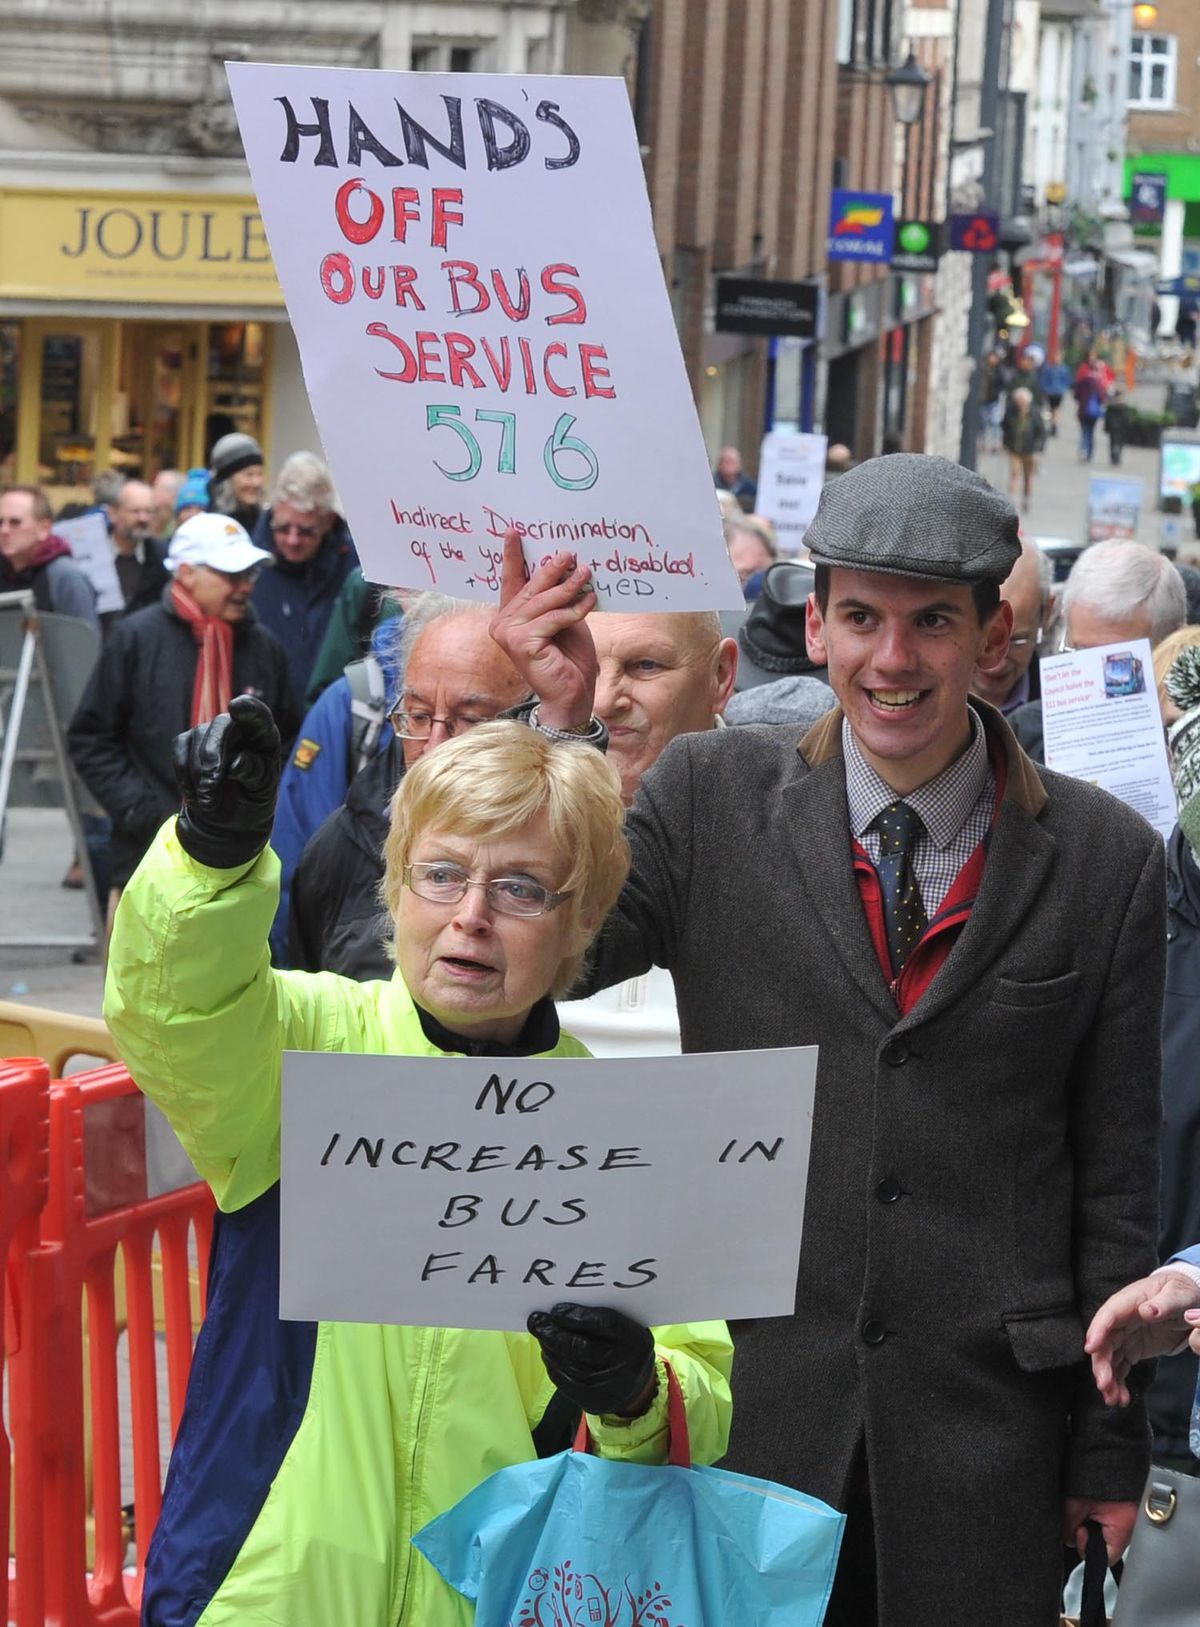 A protest march makes its way from the Square in Shrewsbury to the bus station